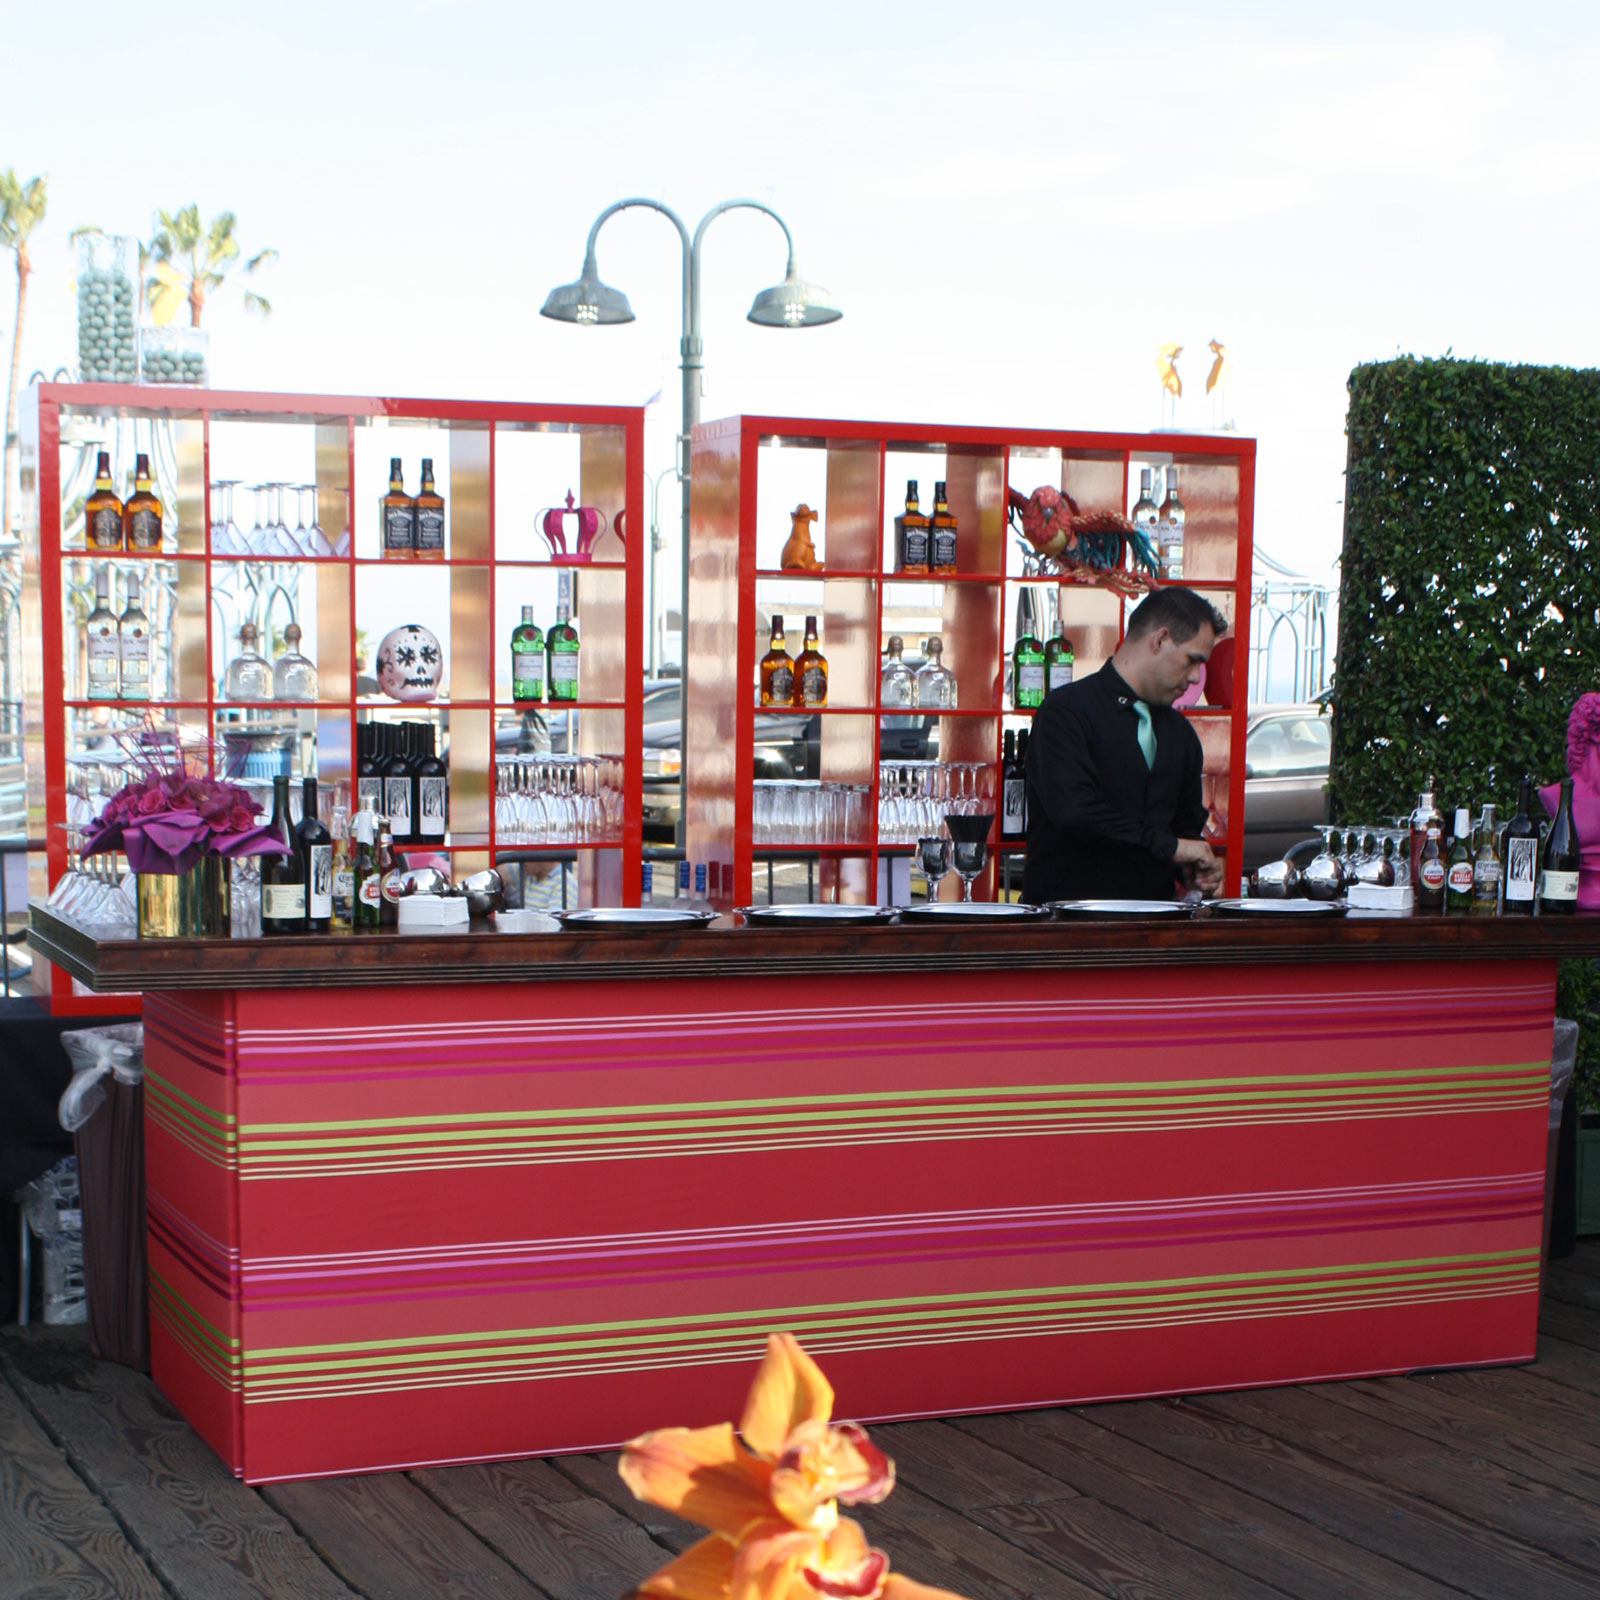 Carousel Wedding social private event party planner design bar bartender